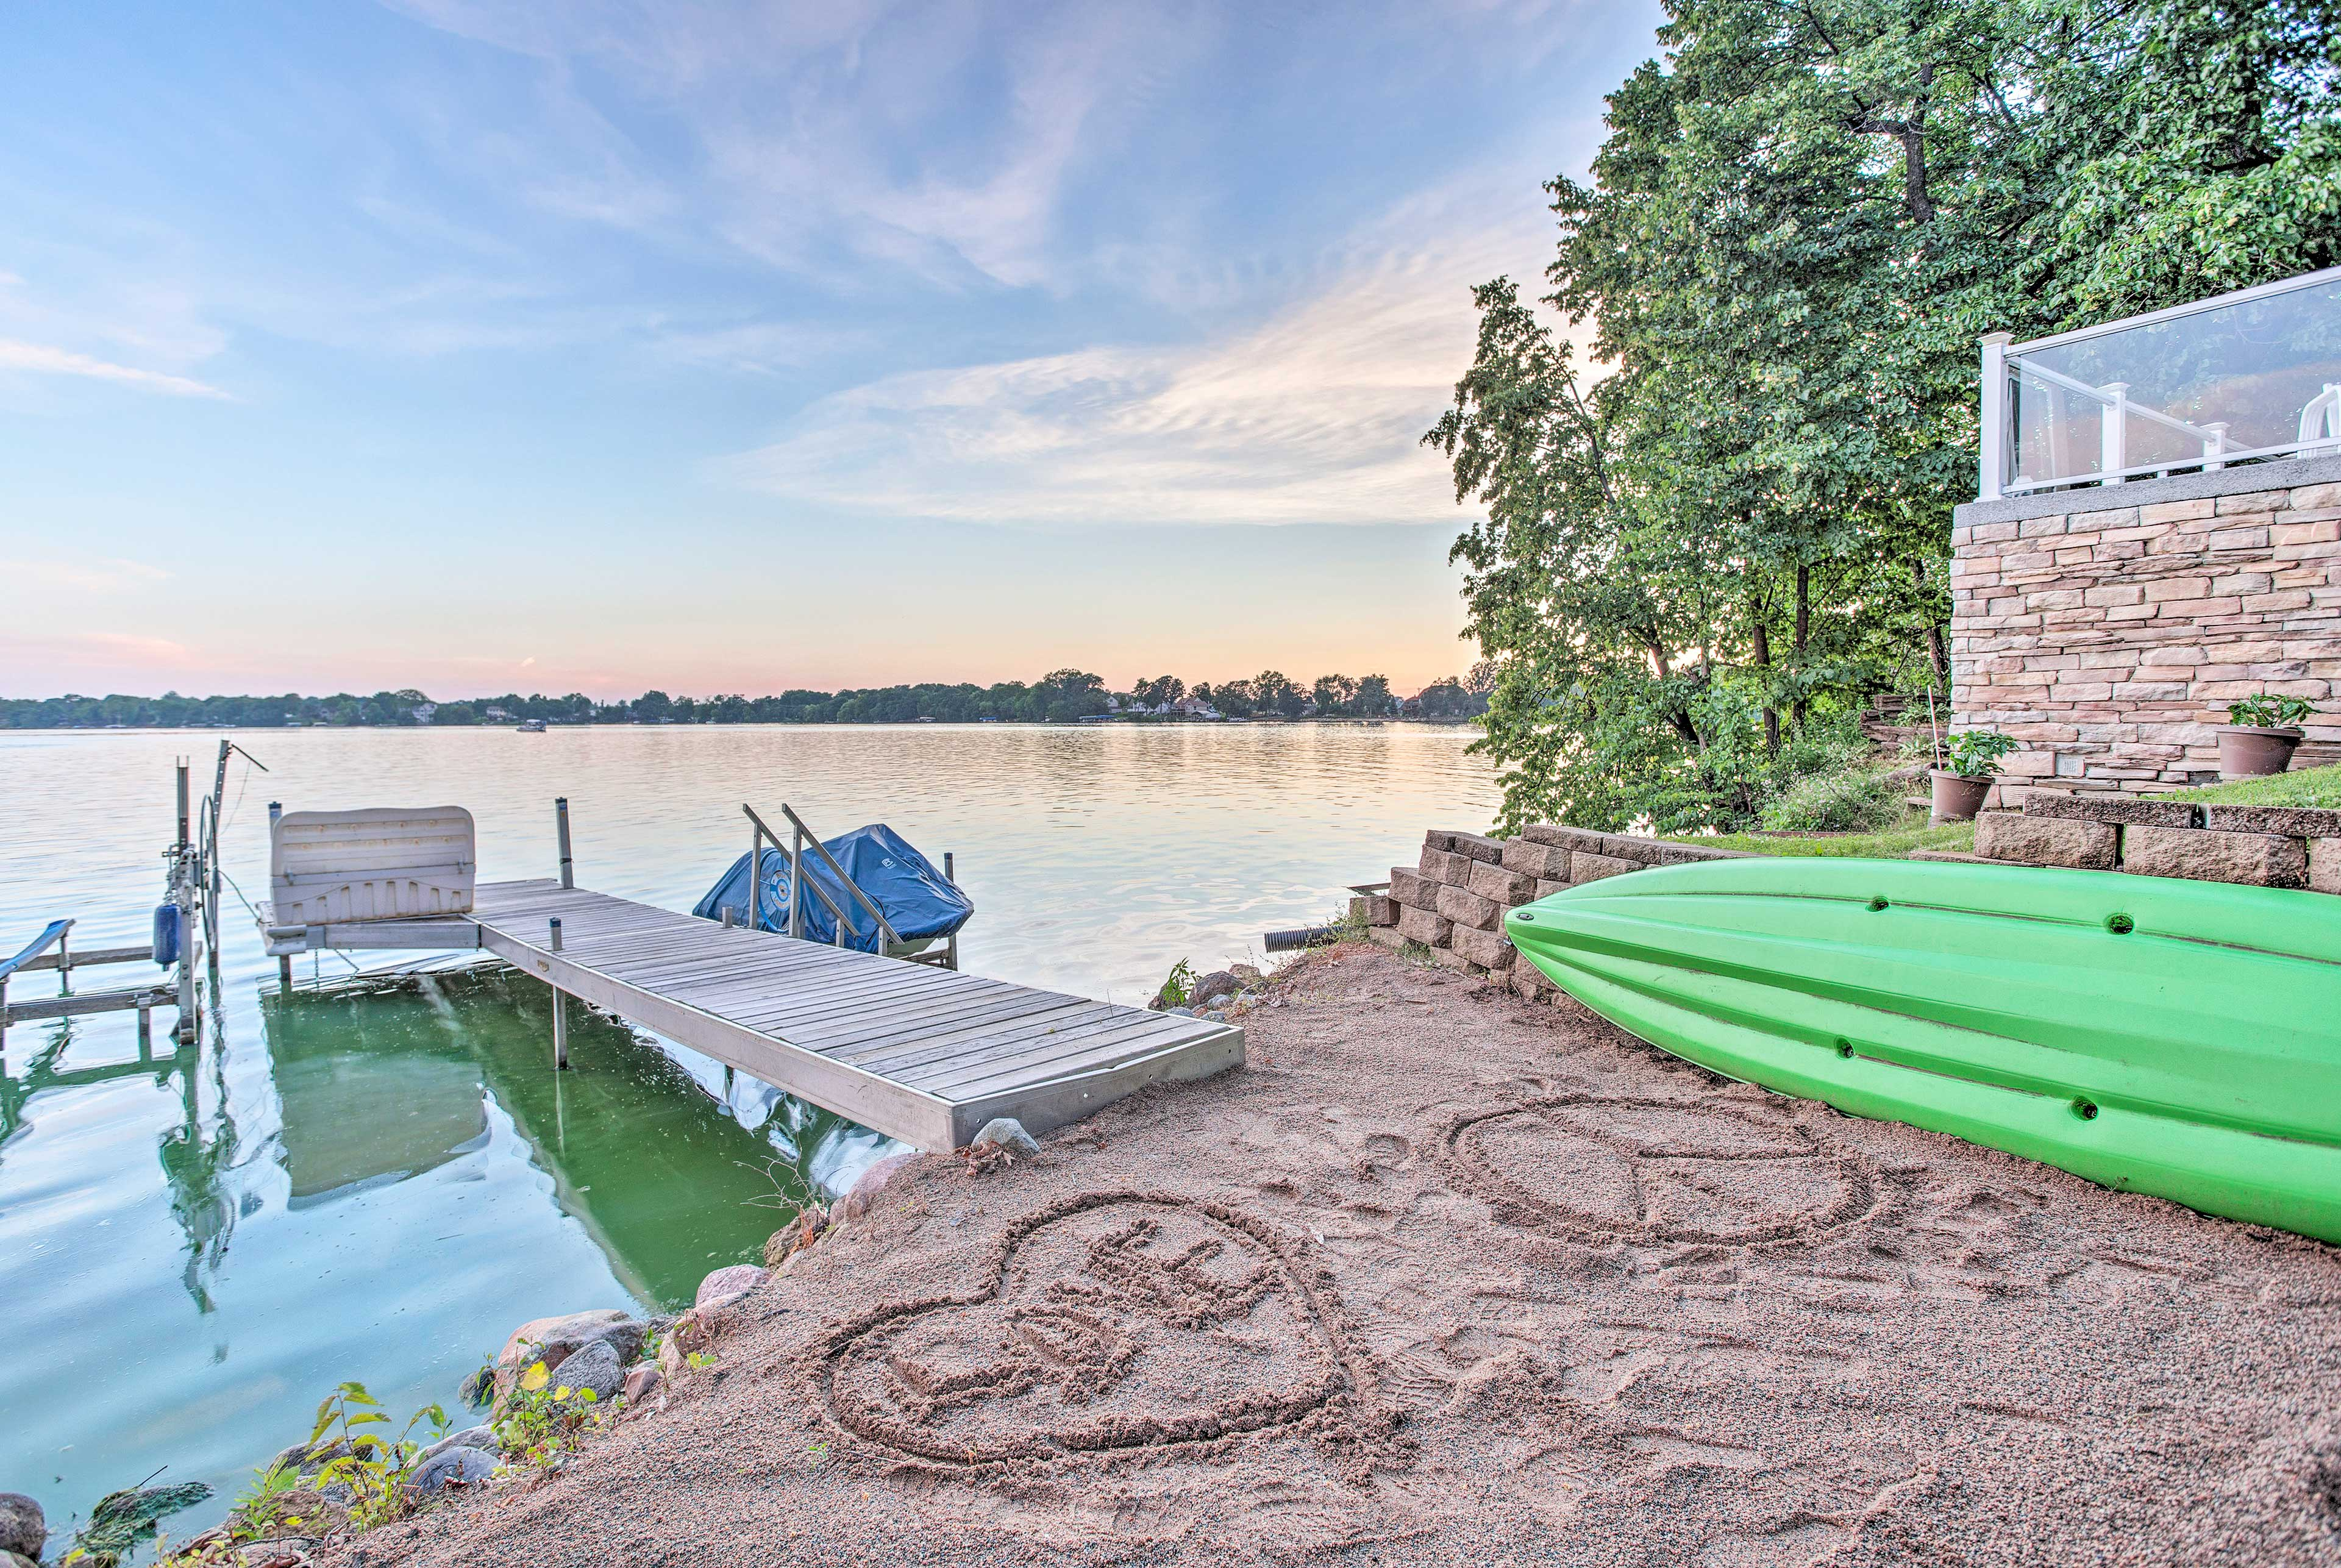 Tie up your boat on the dock for easy access to fishing, boating and swimming!